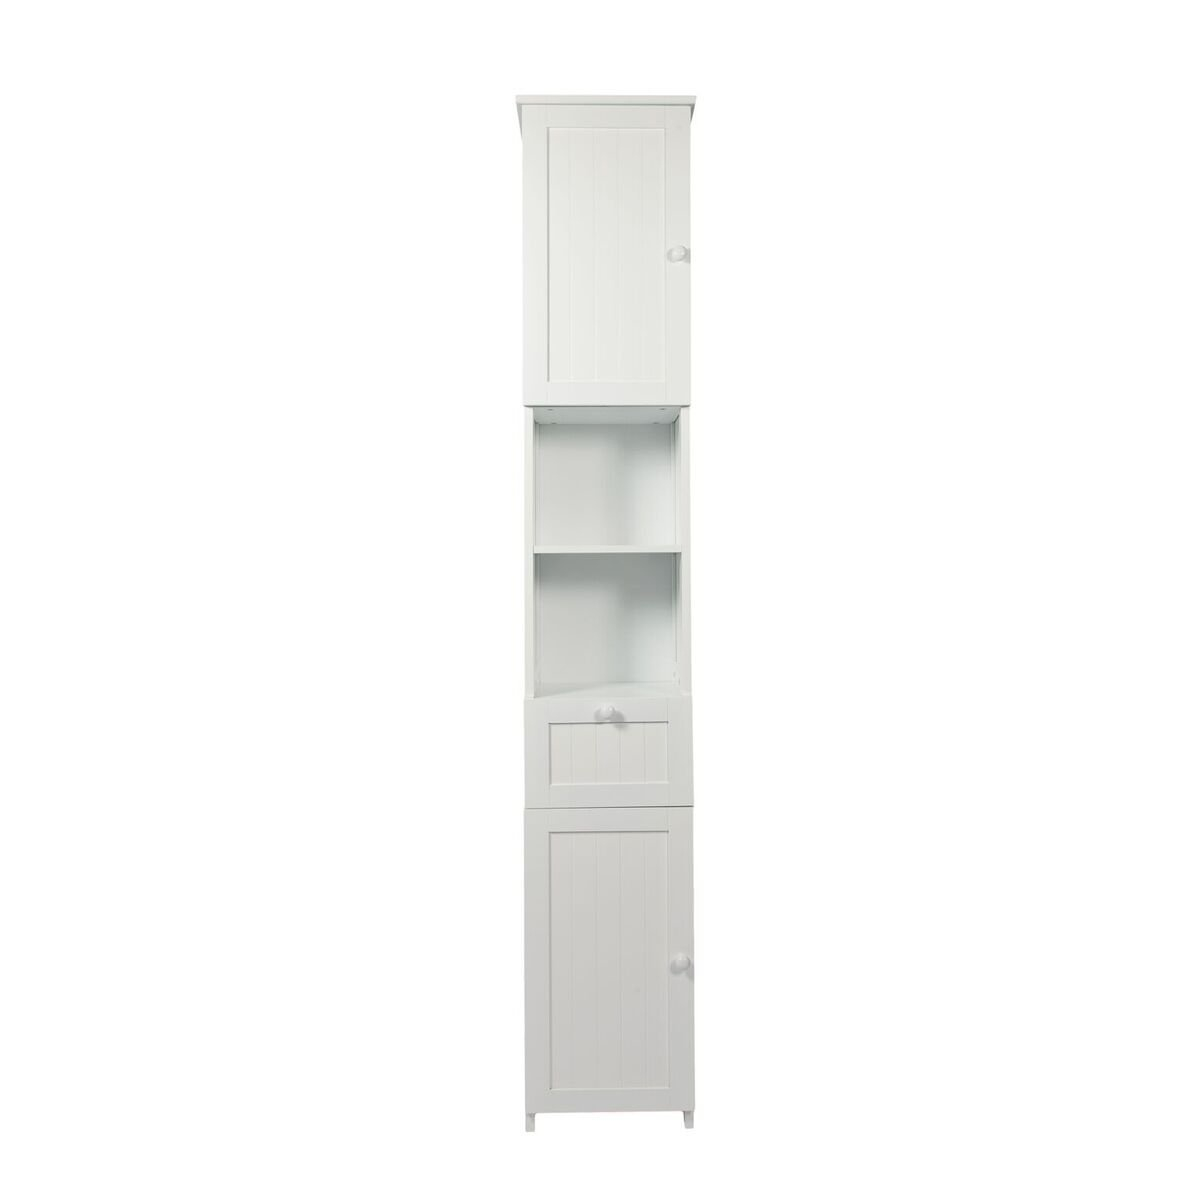 Woodluv Slim Shaker Tall Boy Free Standing Bathroom Storage Cabinet Unit White throughout measurements 1200 X 1200